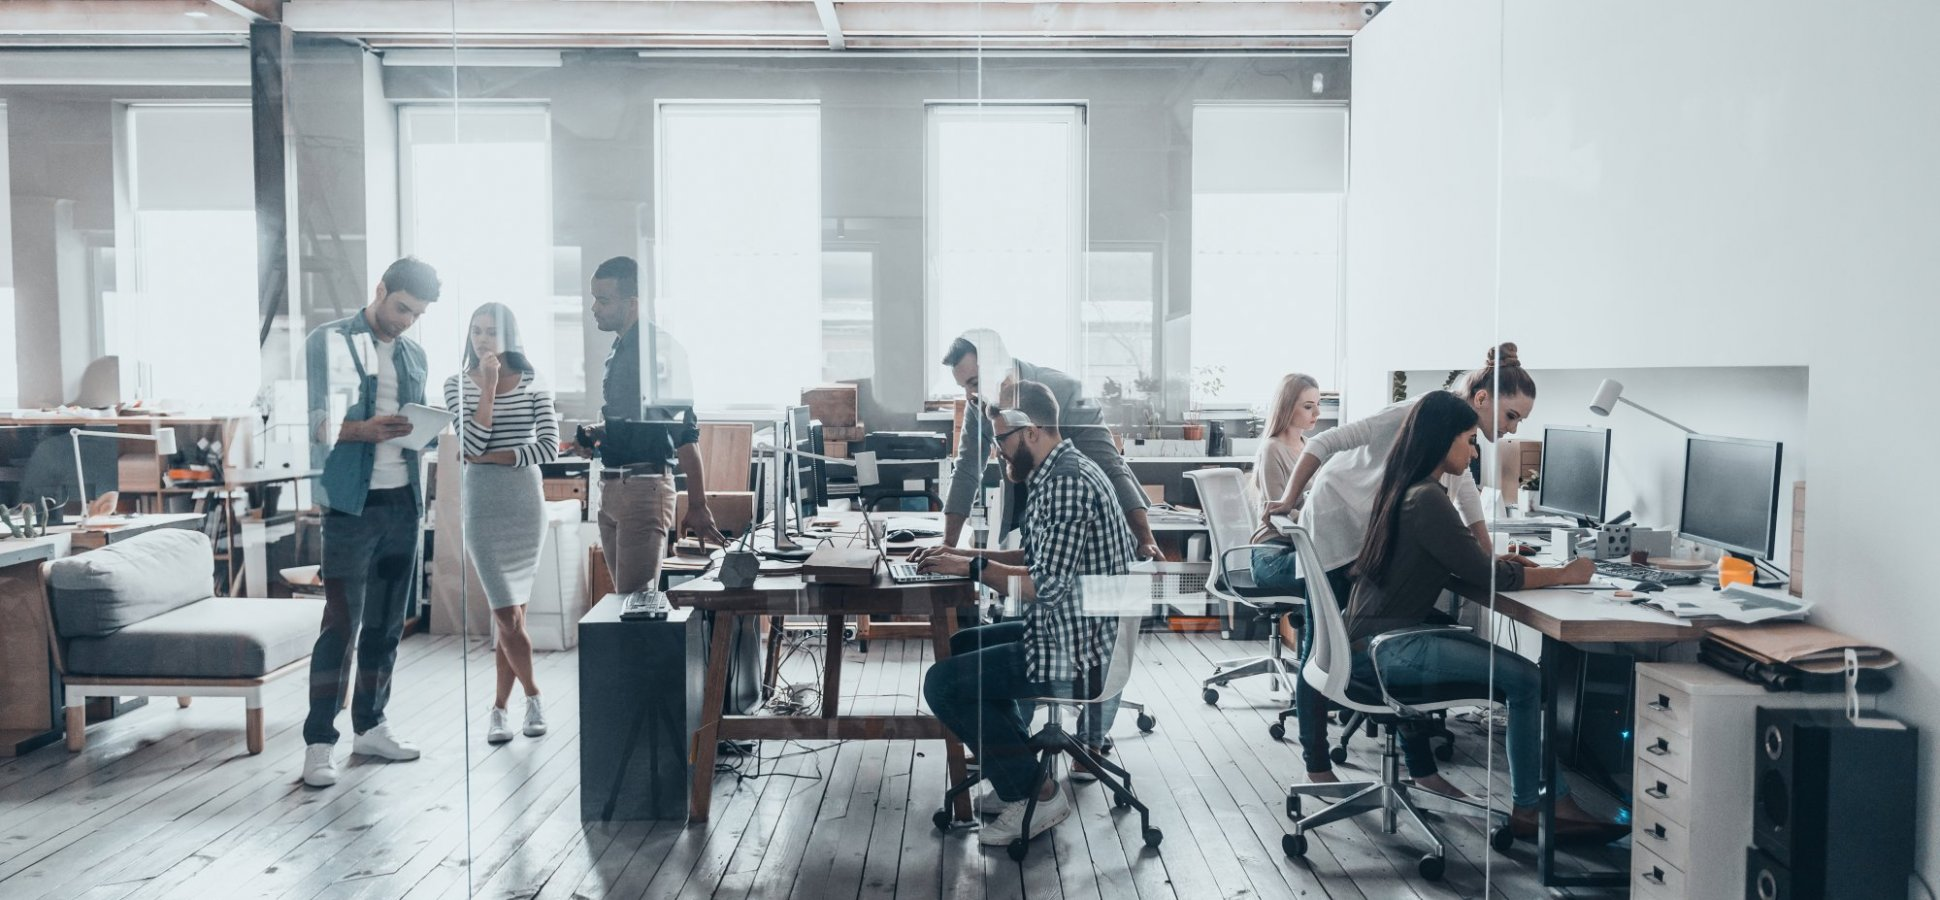 Building a Tech Team? Keep These Five Things Top of Mind